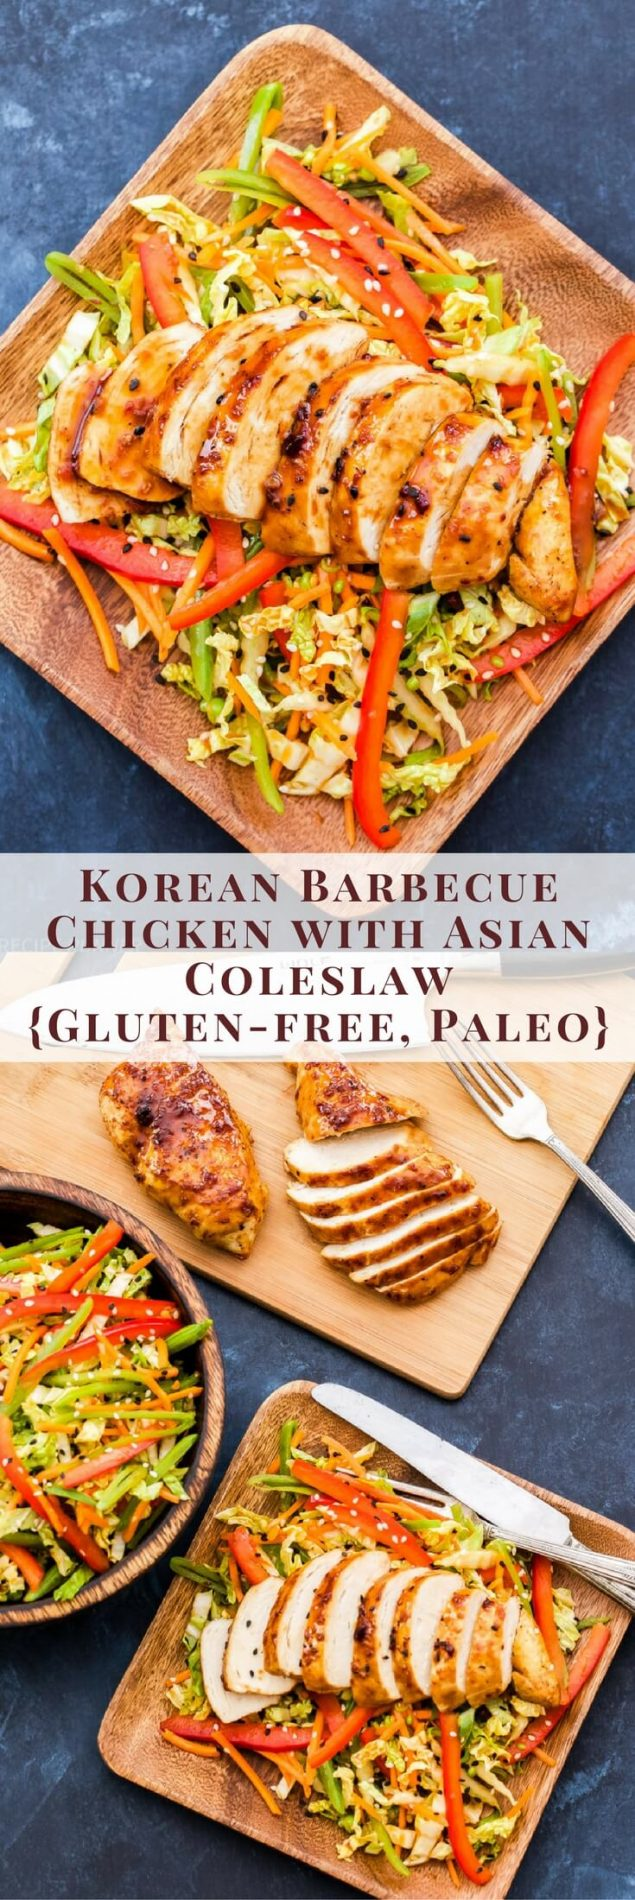 This Korean Barbecue Chicken with Asian Coleslaw has the perfect balance of savory, spicy and sweet flavors. Perfectly juicy baked chicken with a crunchy slaw on the side is a meal the whole family will love!